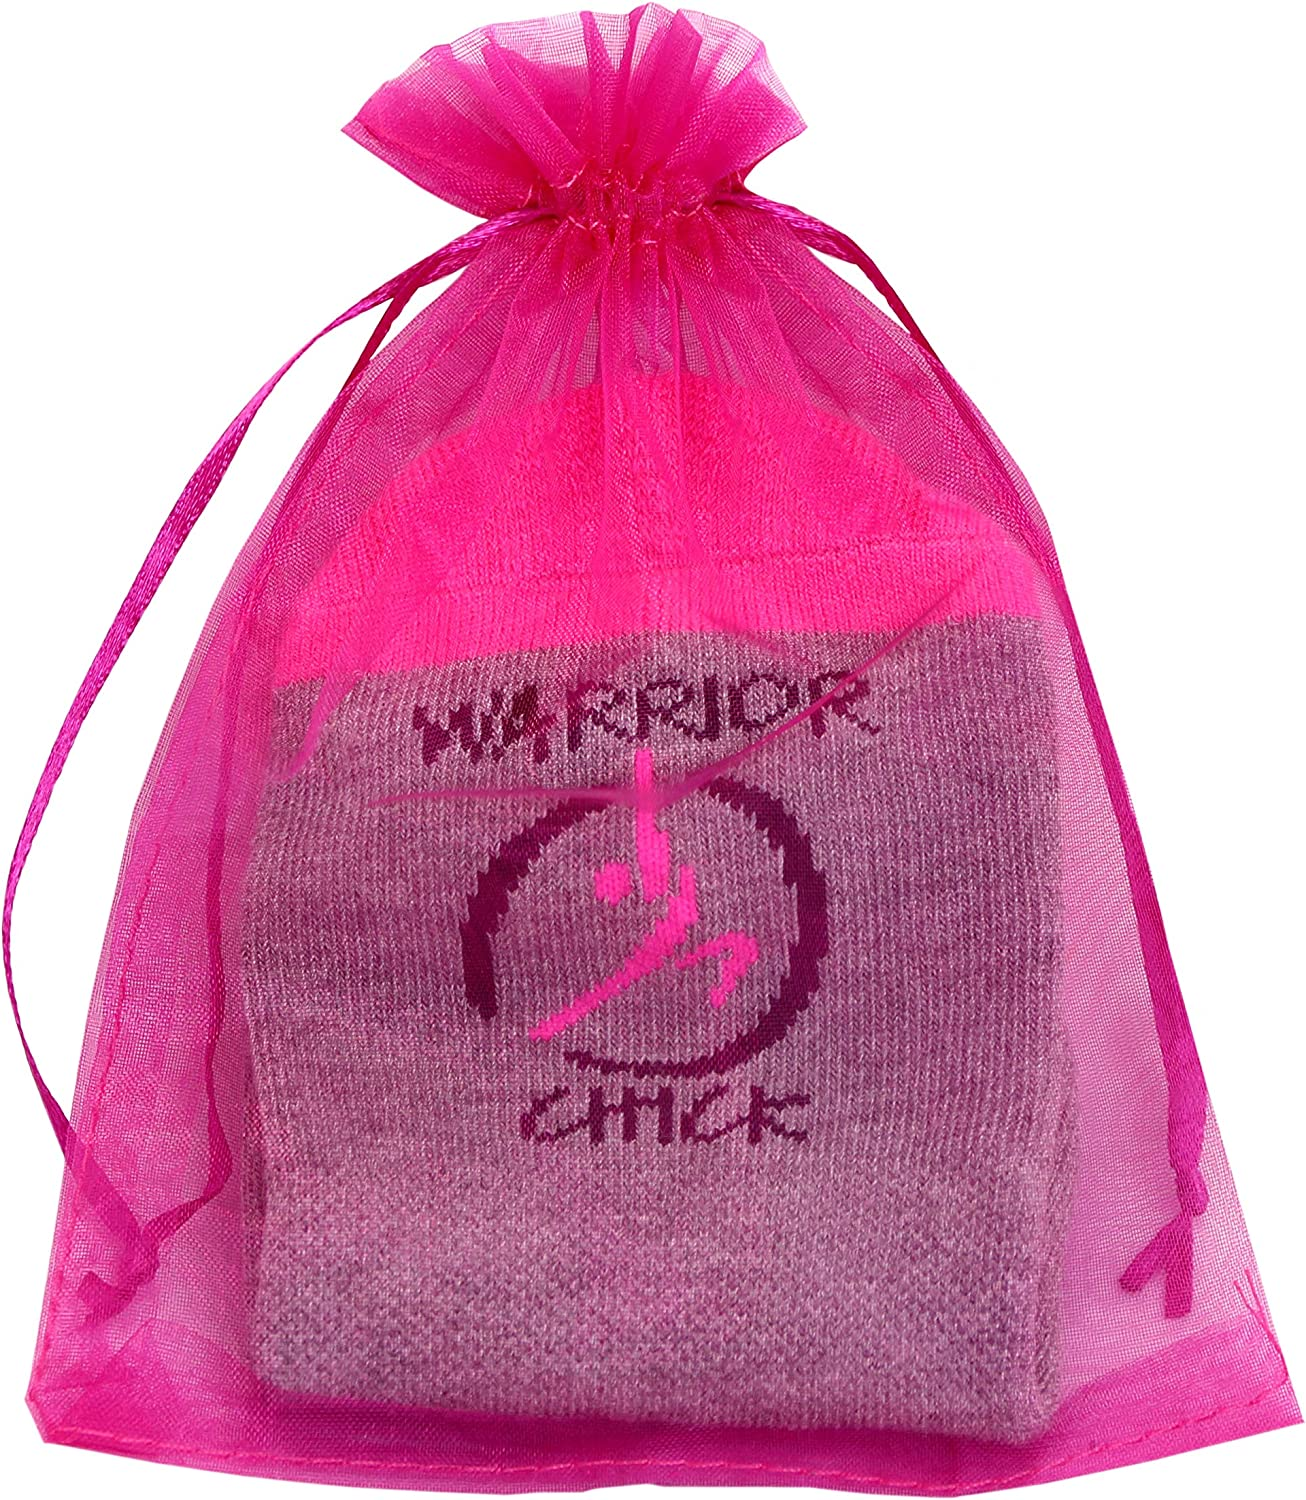 "Toe Talk""Warrior Chick"" Non Slip Grip Socks for Pilates Yoga Barre Tai Chi Dance Meditation & Mindful Living: Clothing"